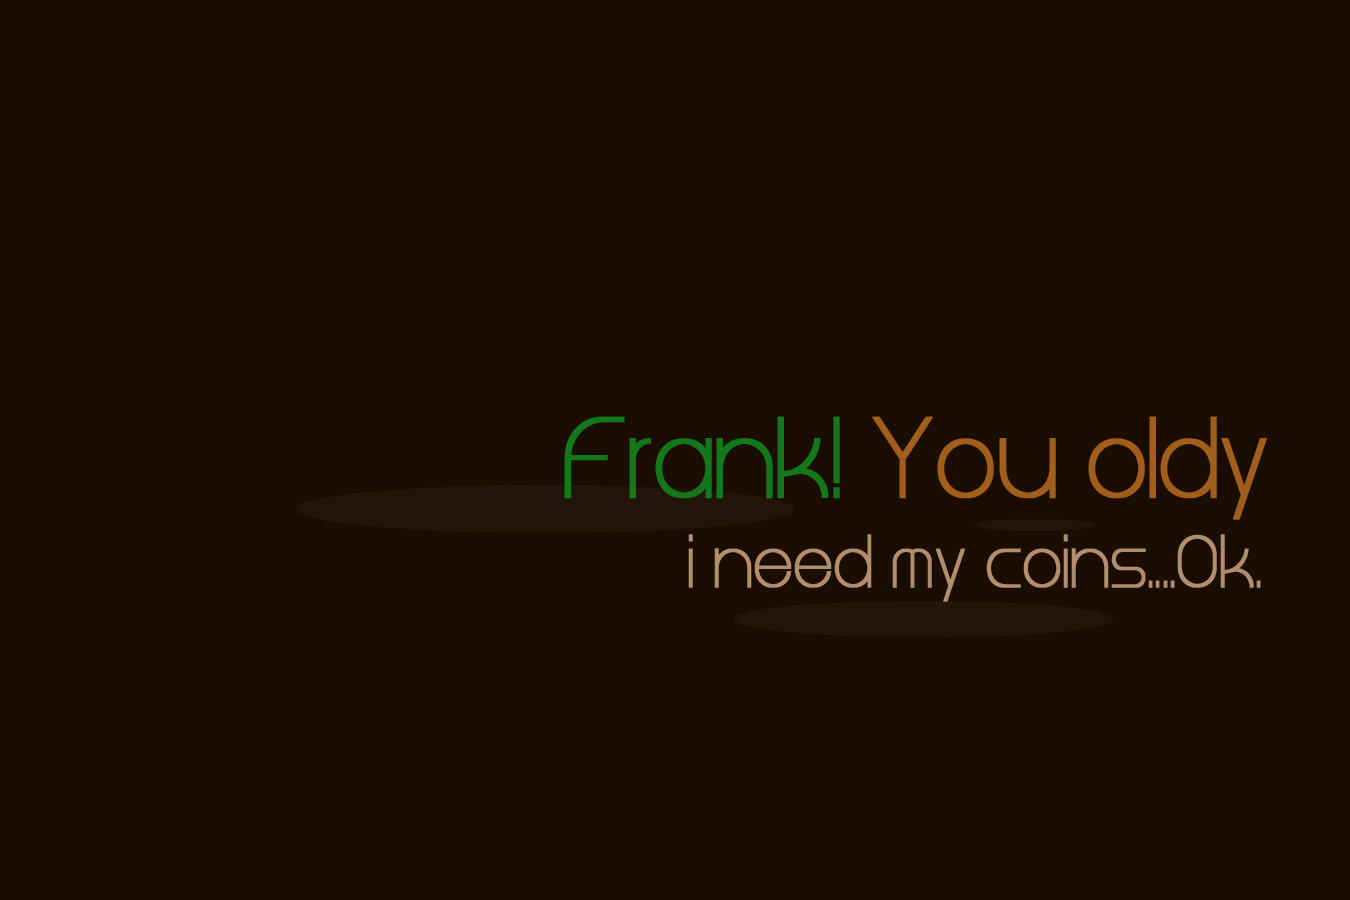 Mufeed wallpaper - frank by MufeedAhmad